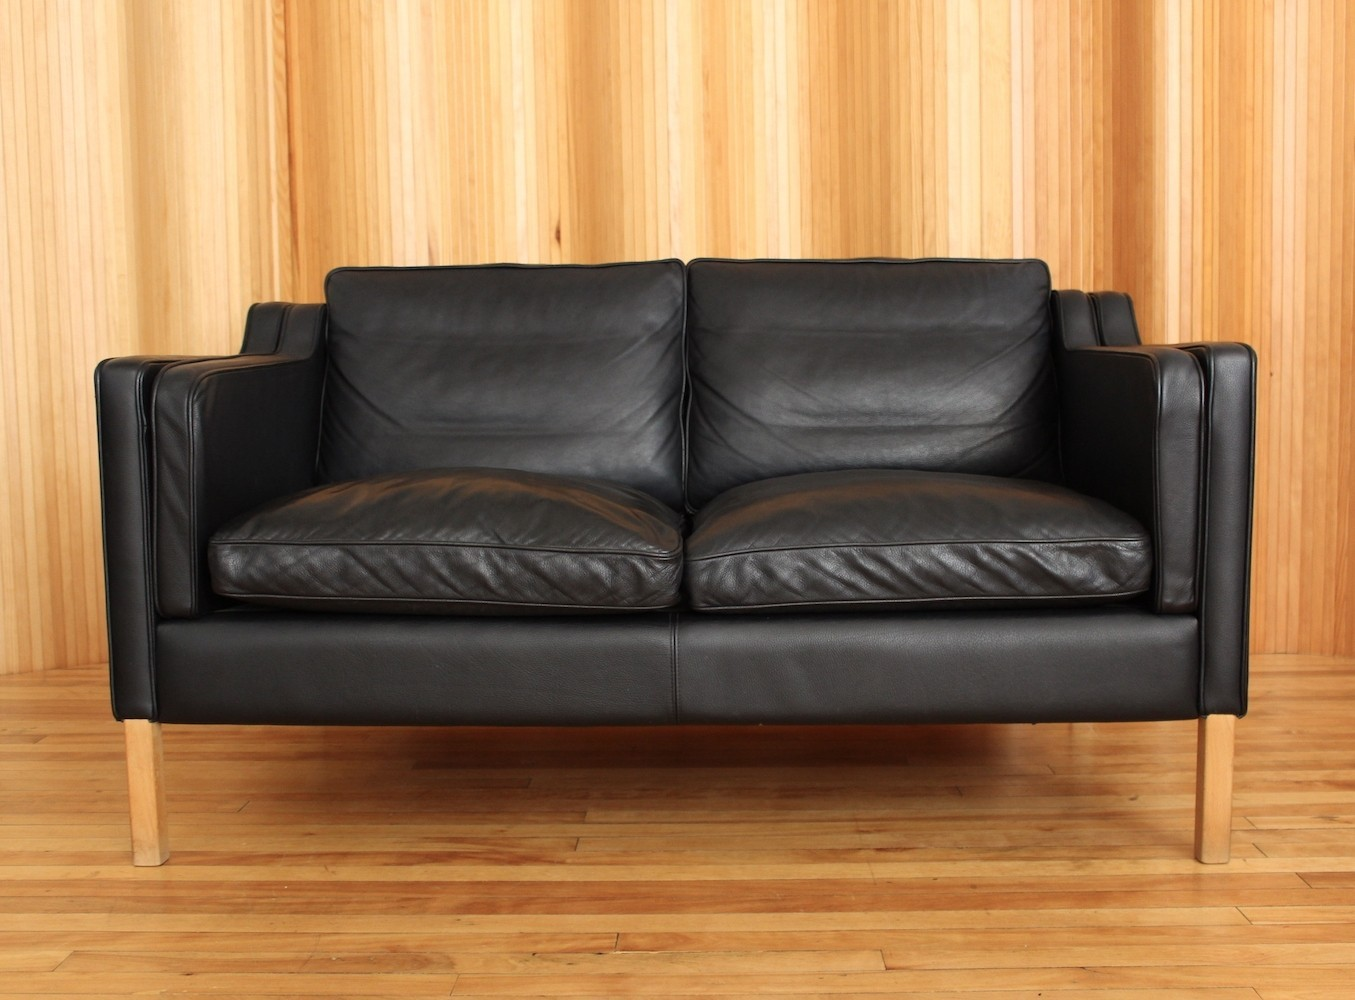 Clic Danish Two Seater Leather Sofa